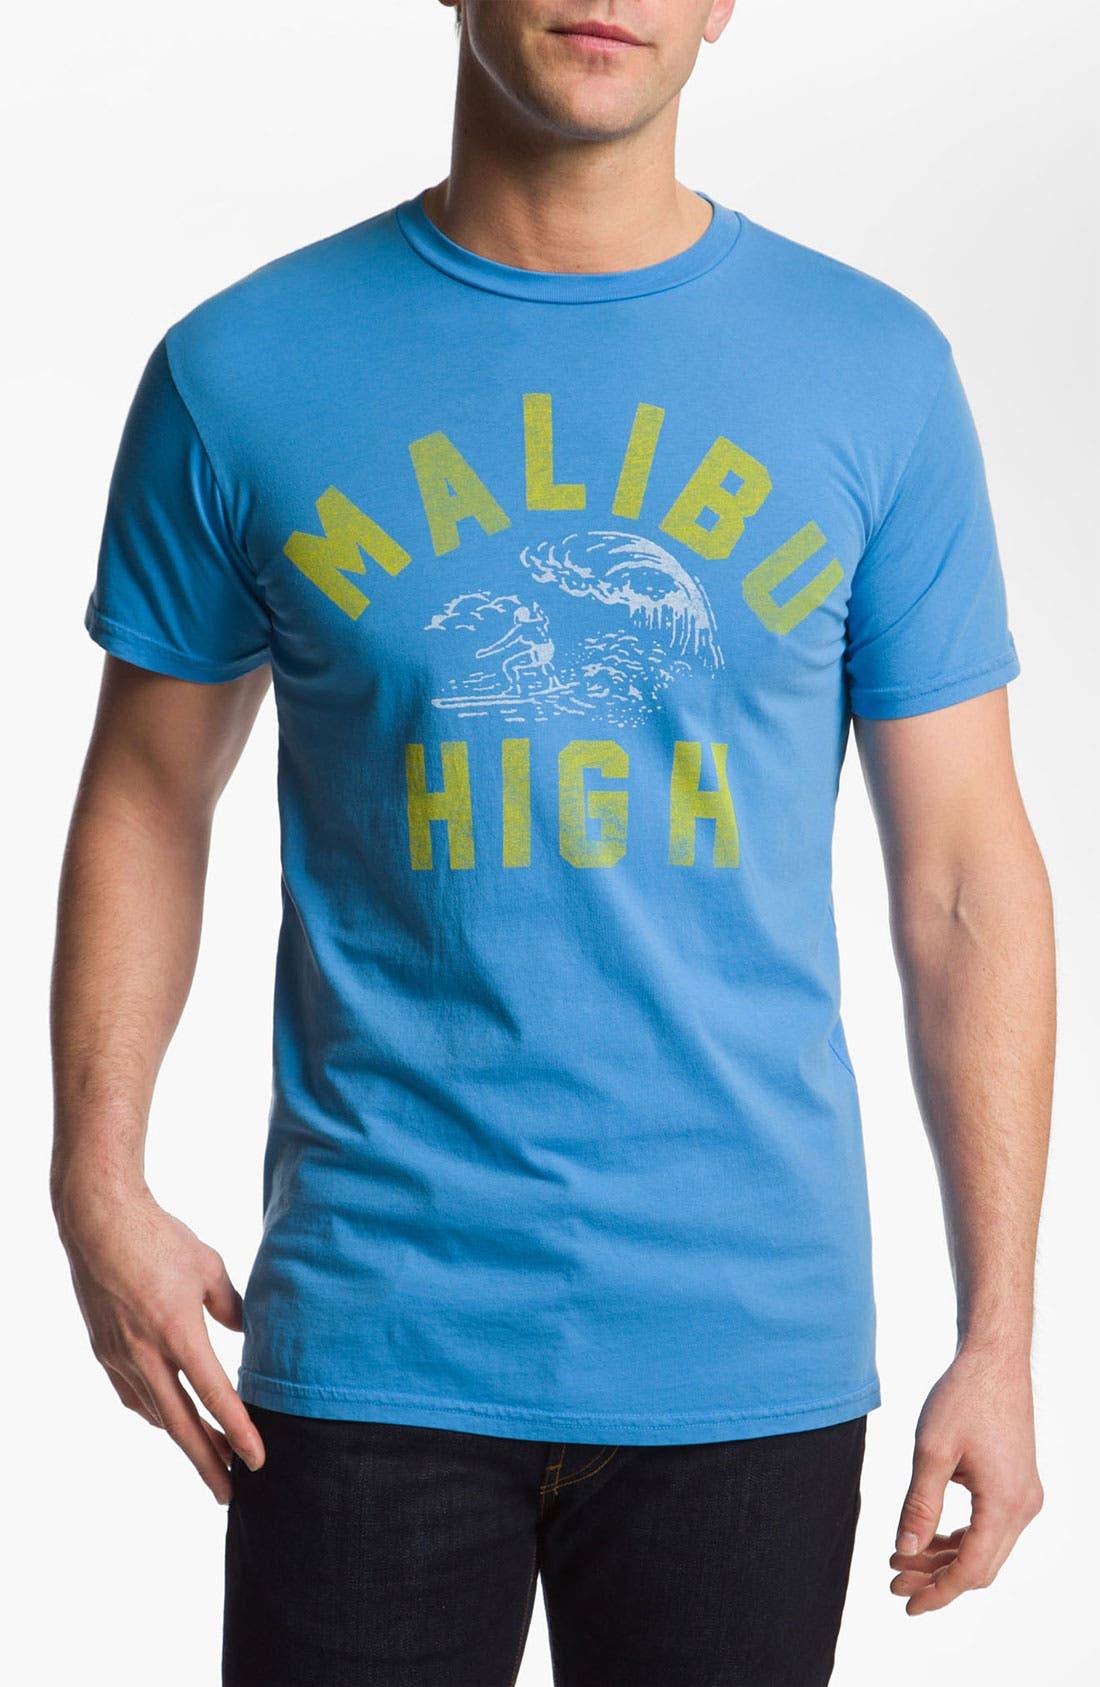 Alternate Image 1 Selected - PalmerCash 'Malibu High' T-Shirt